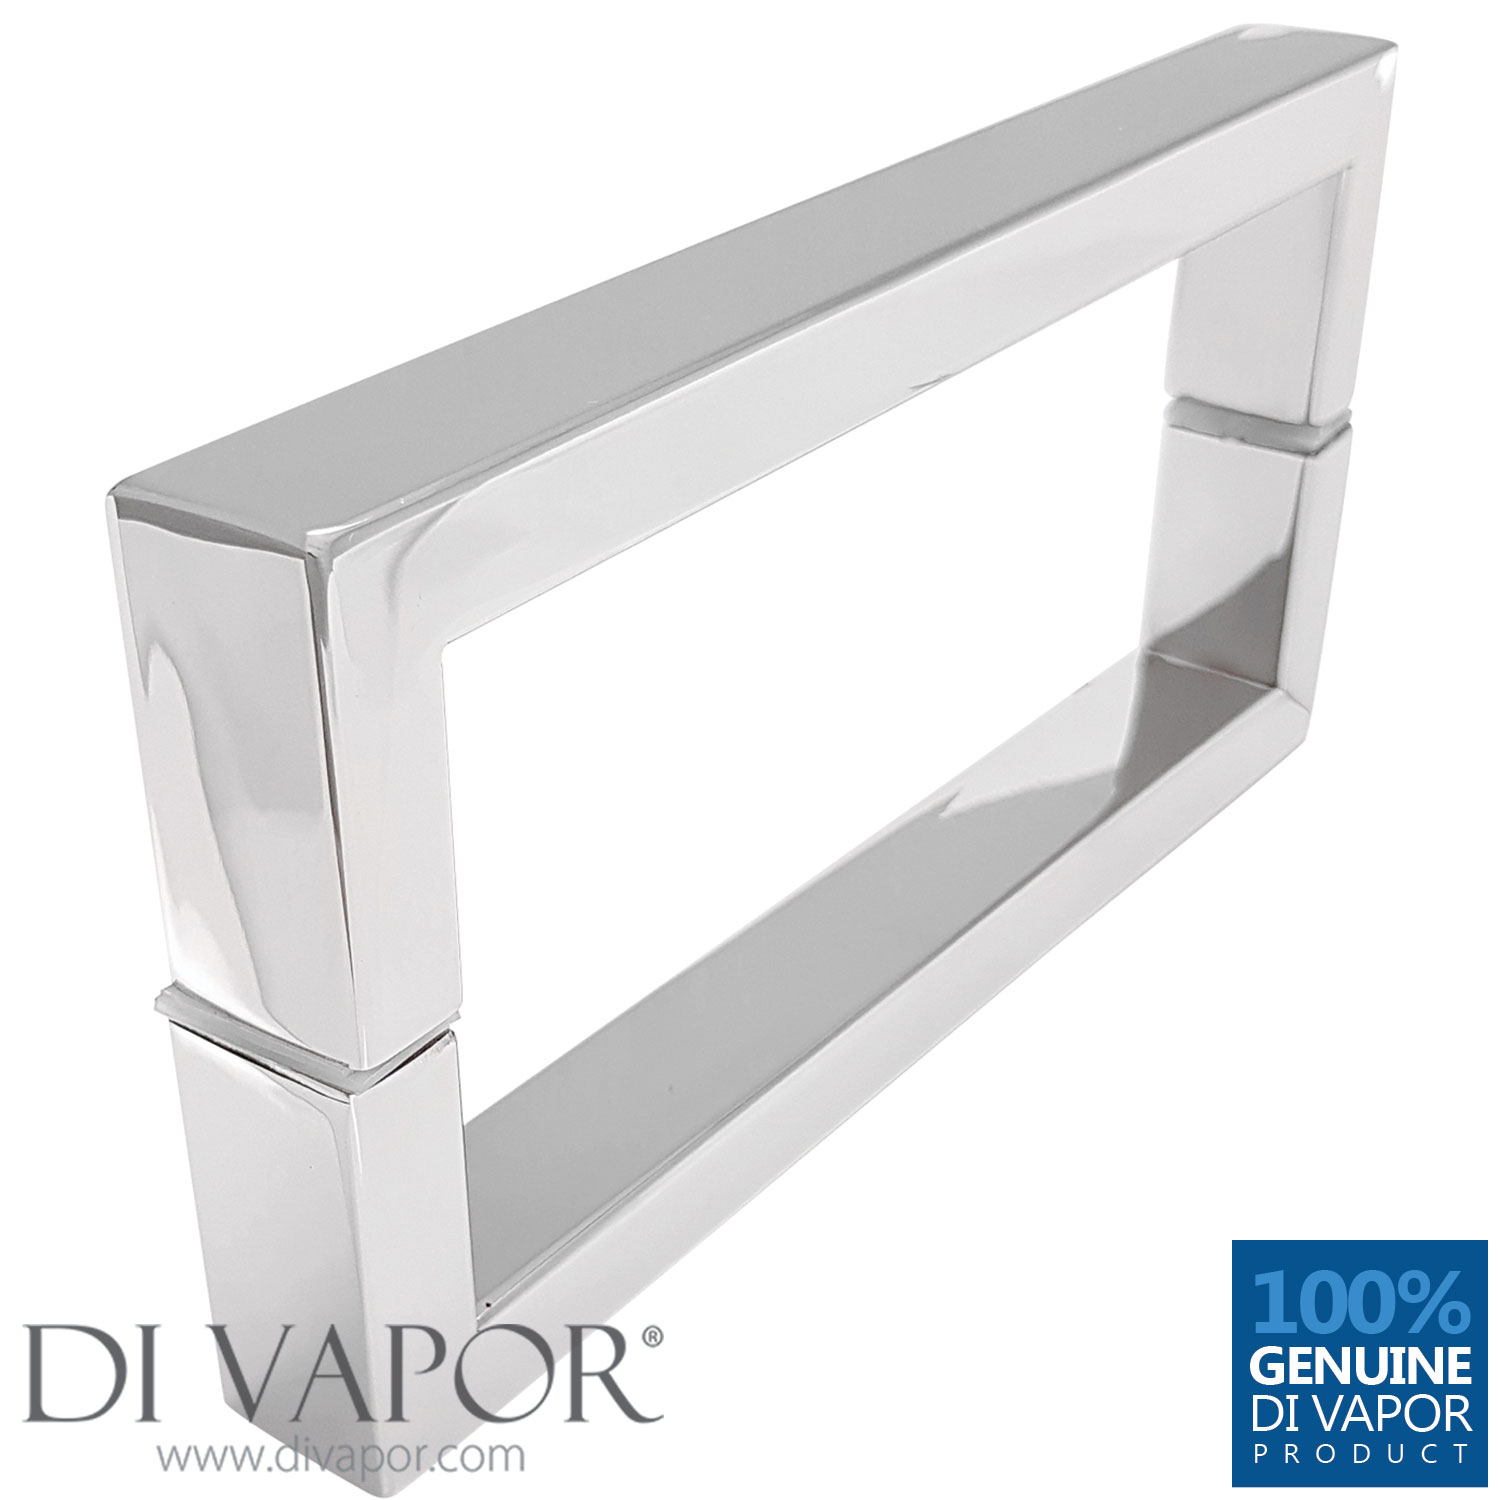 200mm Shower Door Handles 20cm Hole To Hole Stainless